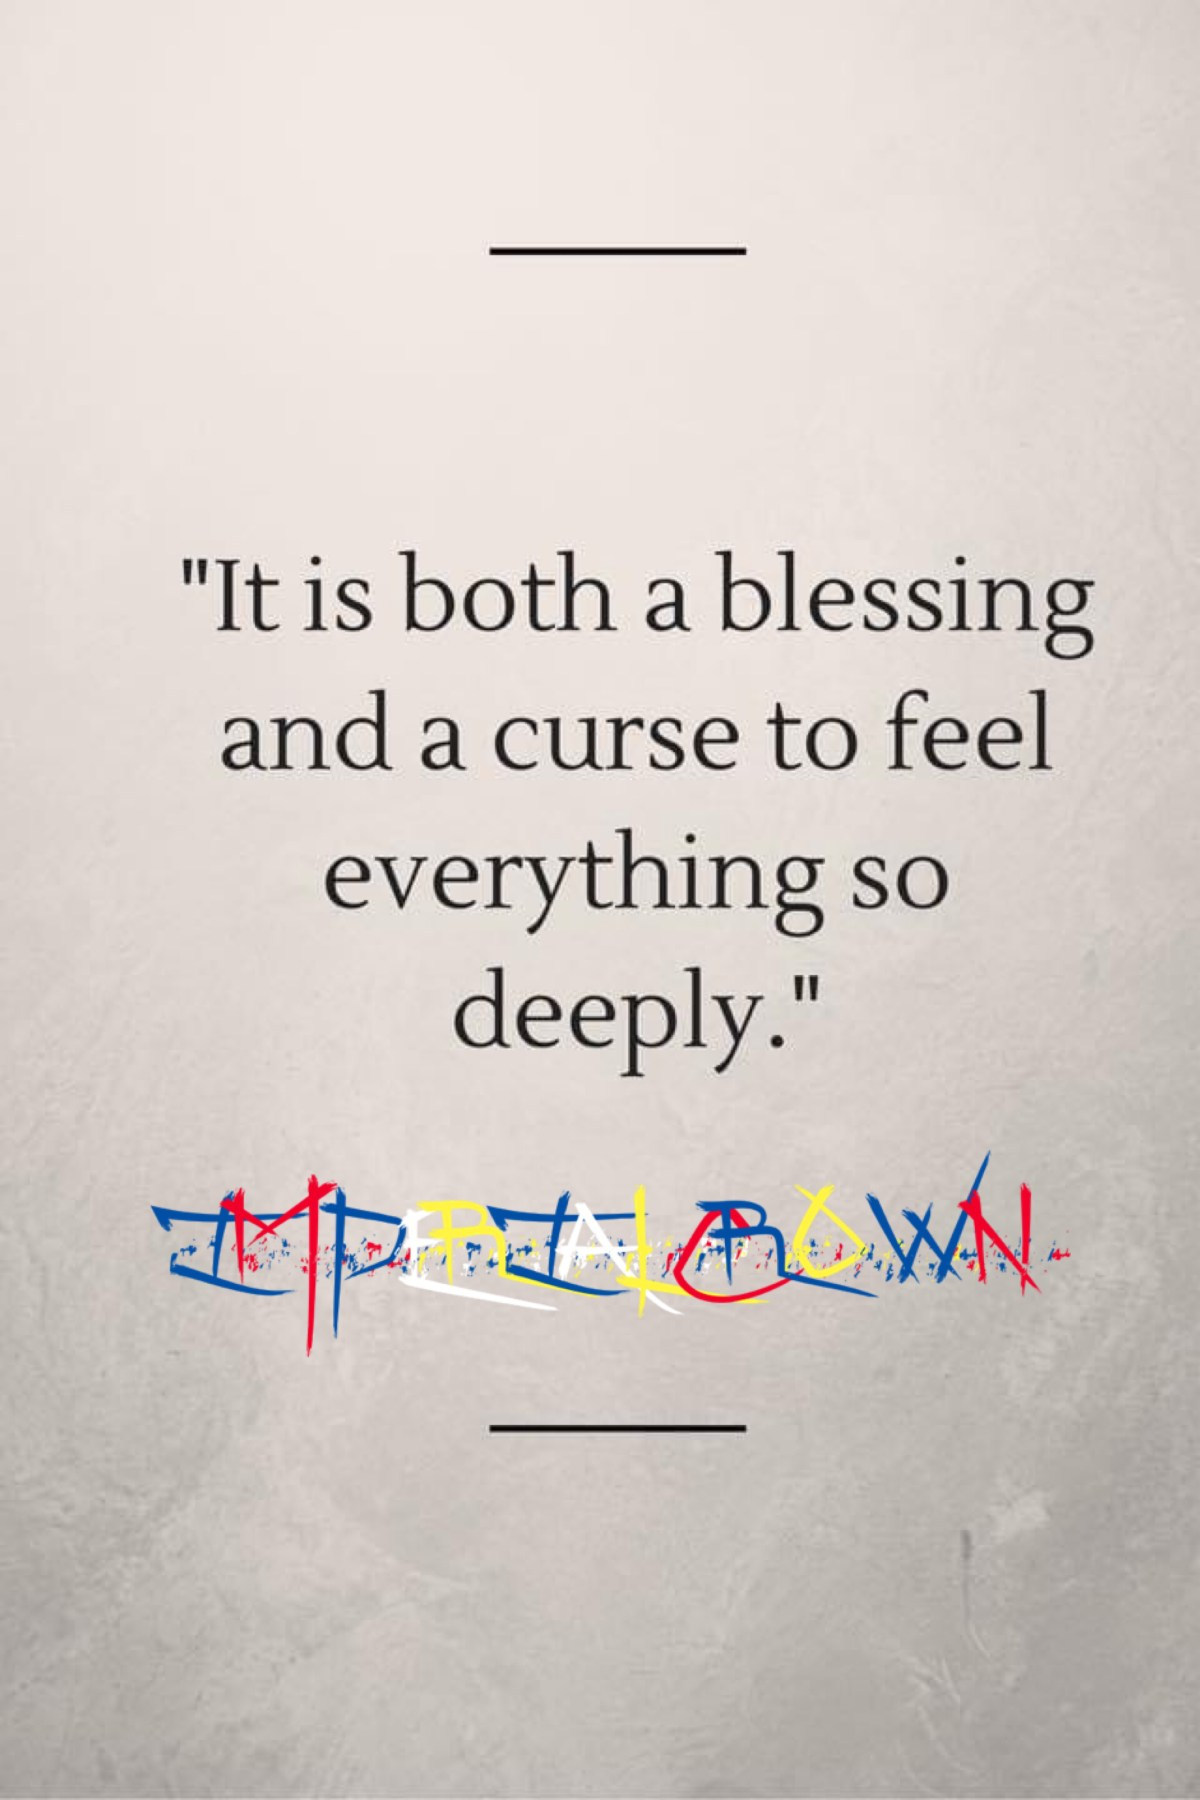 """ It's both a blessing and a curse to feel everything so deeply."""